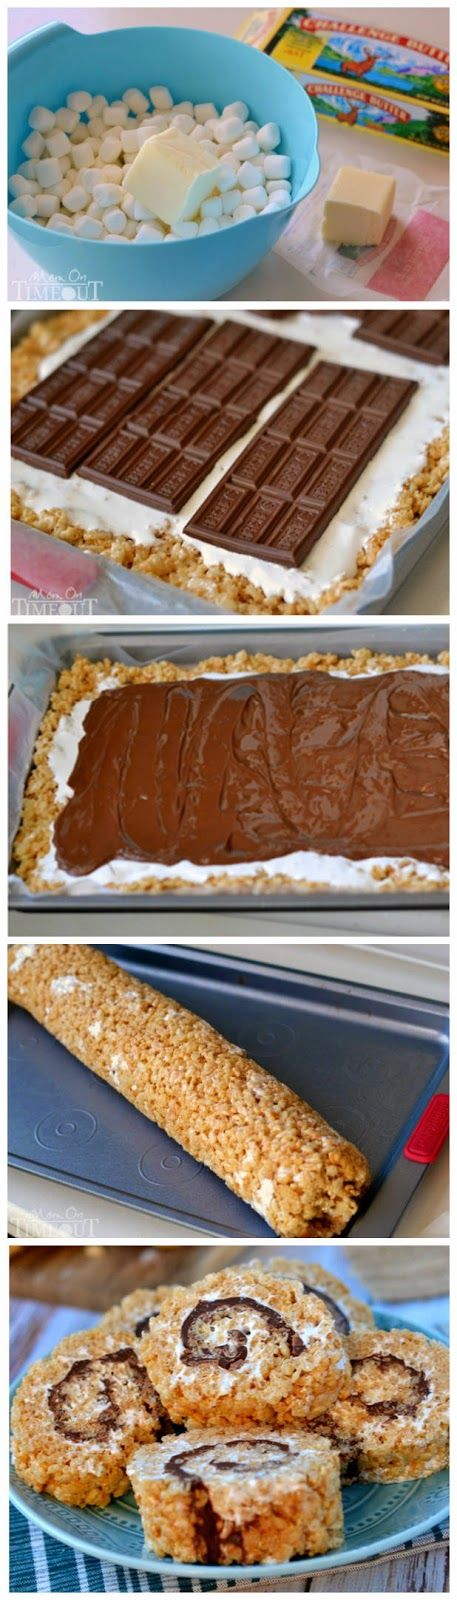 mil asked me to make rice krispy treats for thanksgiving. i will make s'mores rice krispy treats instead!